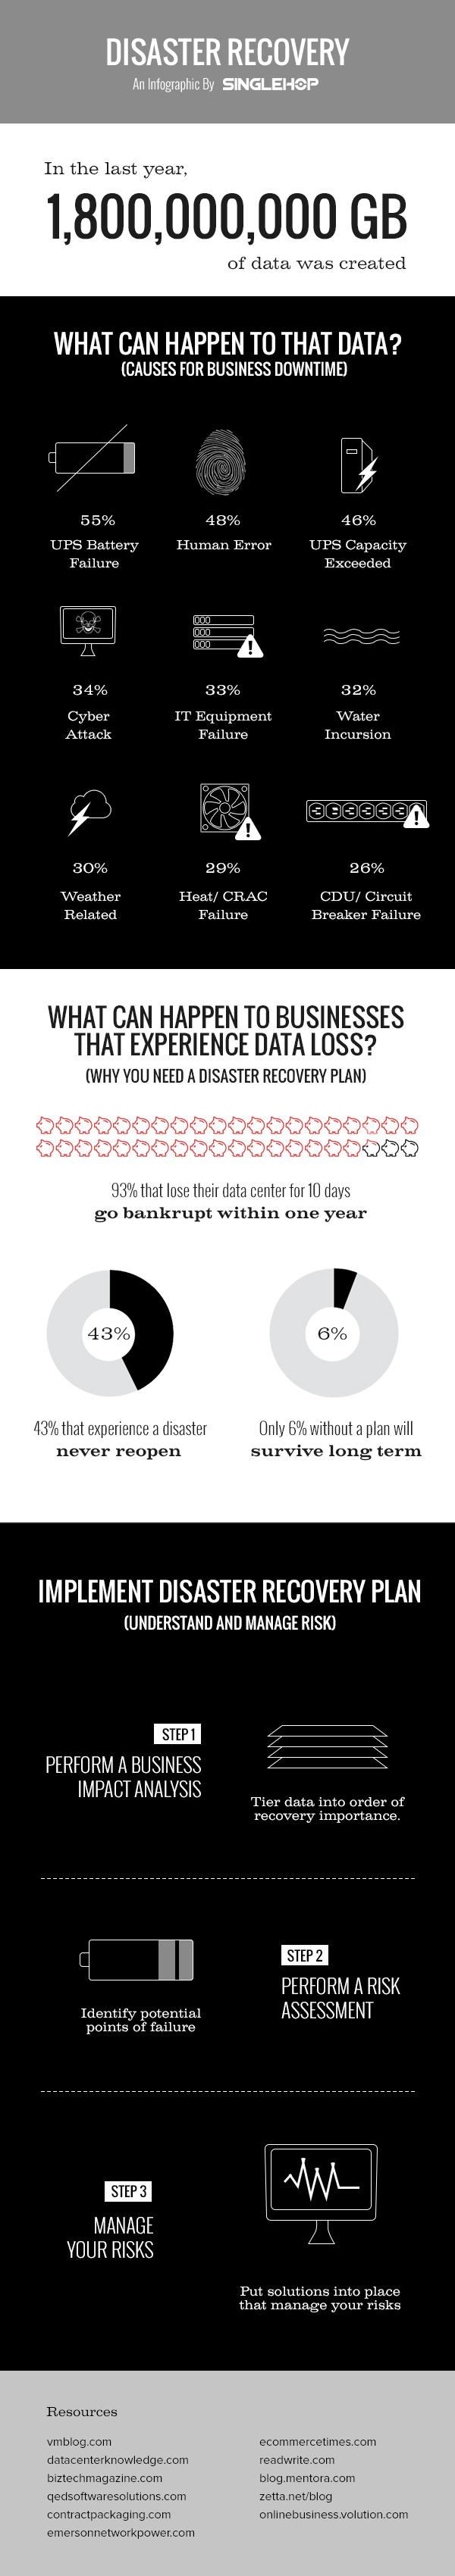 Data Loss and Disaster Recovery (Infographic)